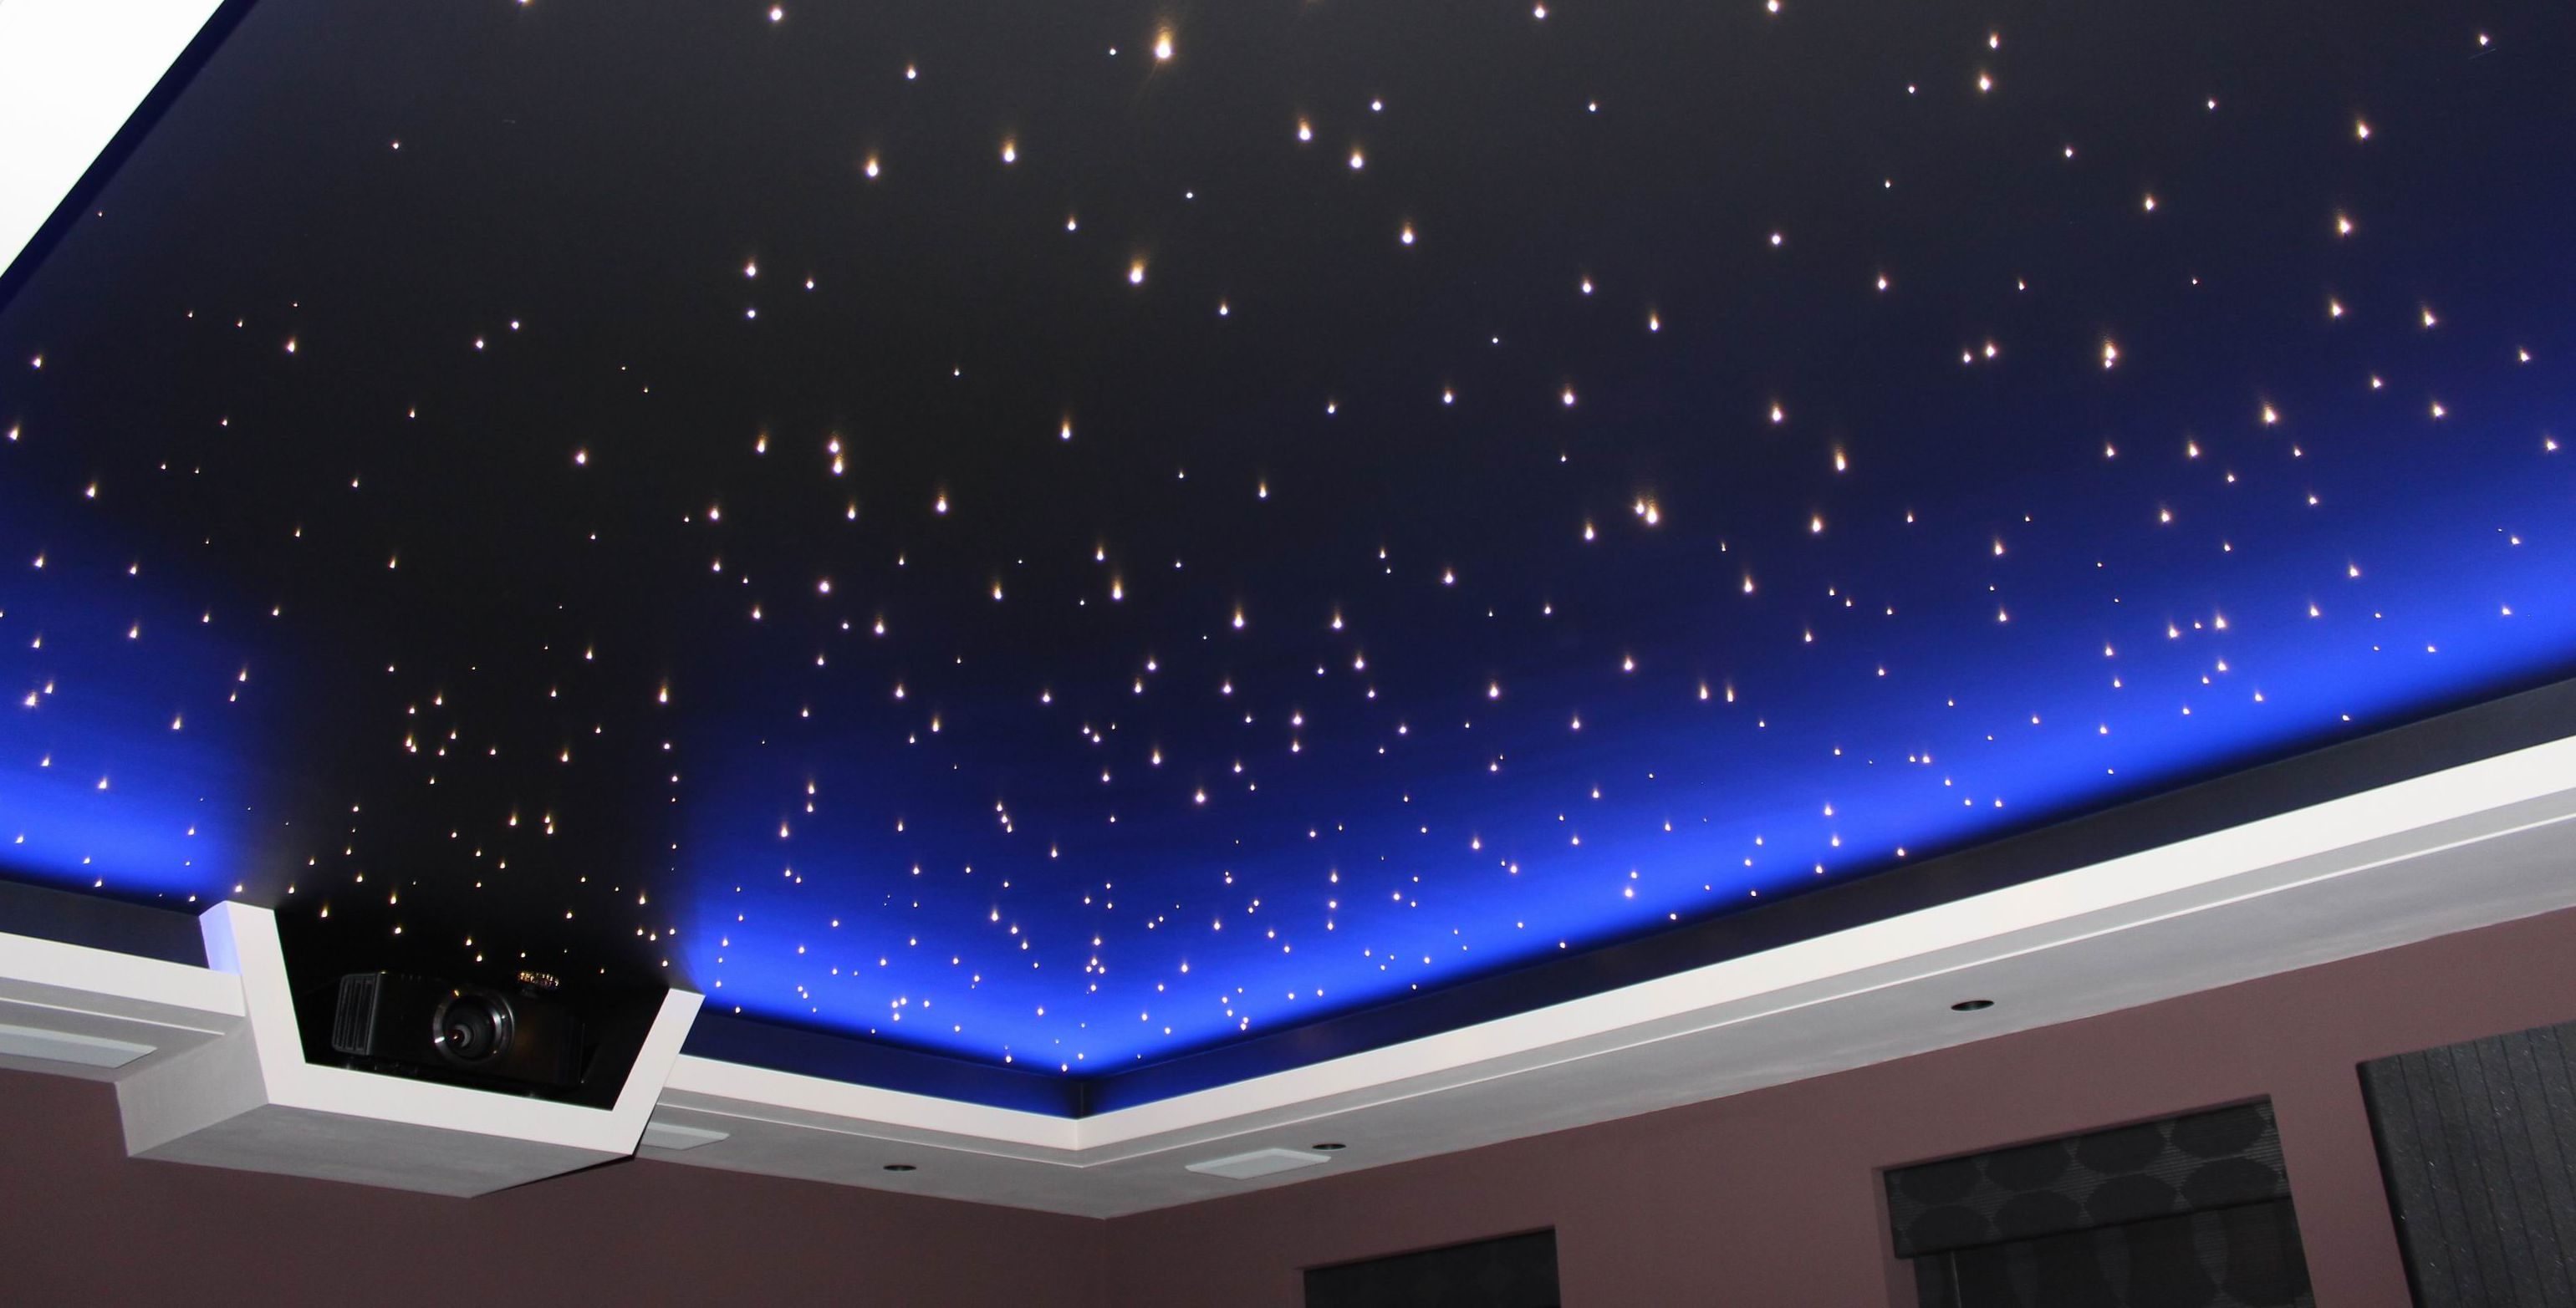 Are Led Ceiling Lights Any Good : Star lights ceiling make starry sky right in your room